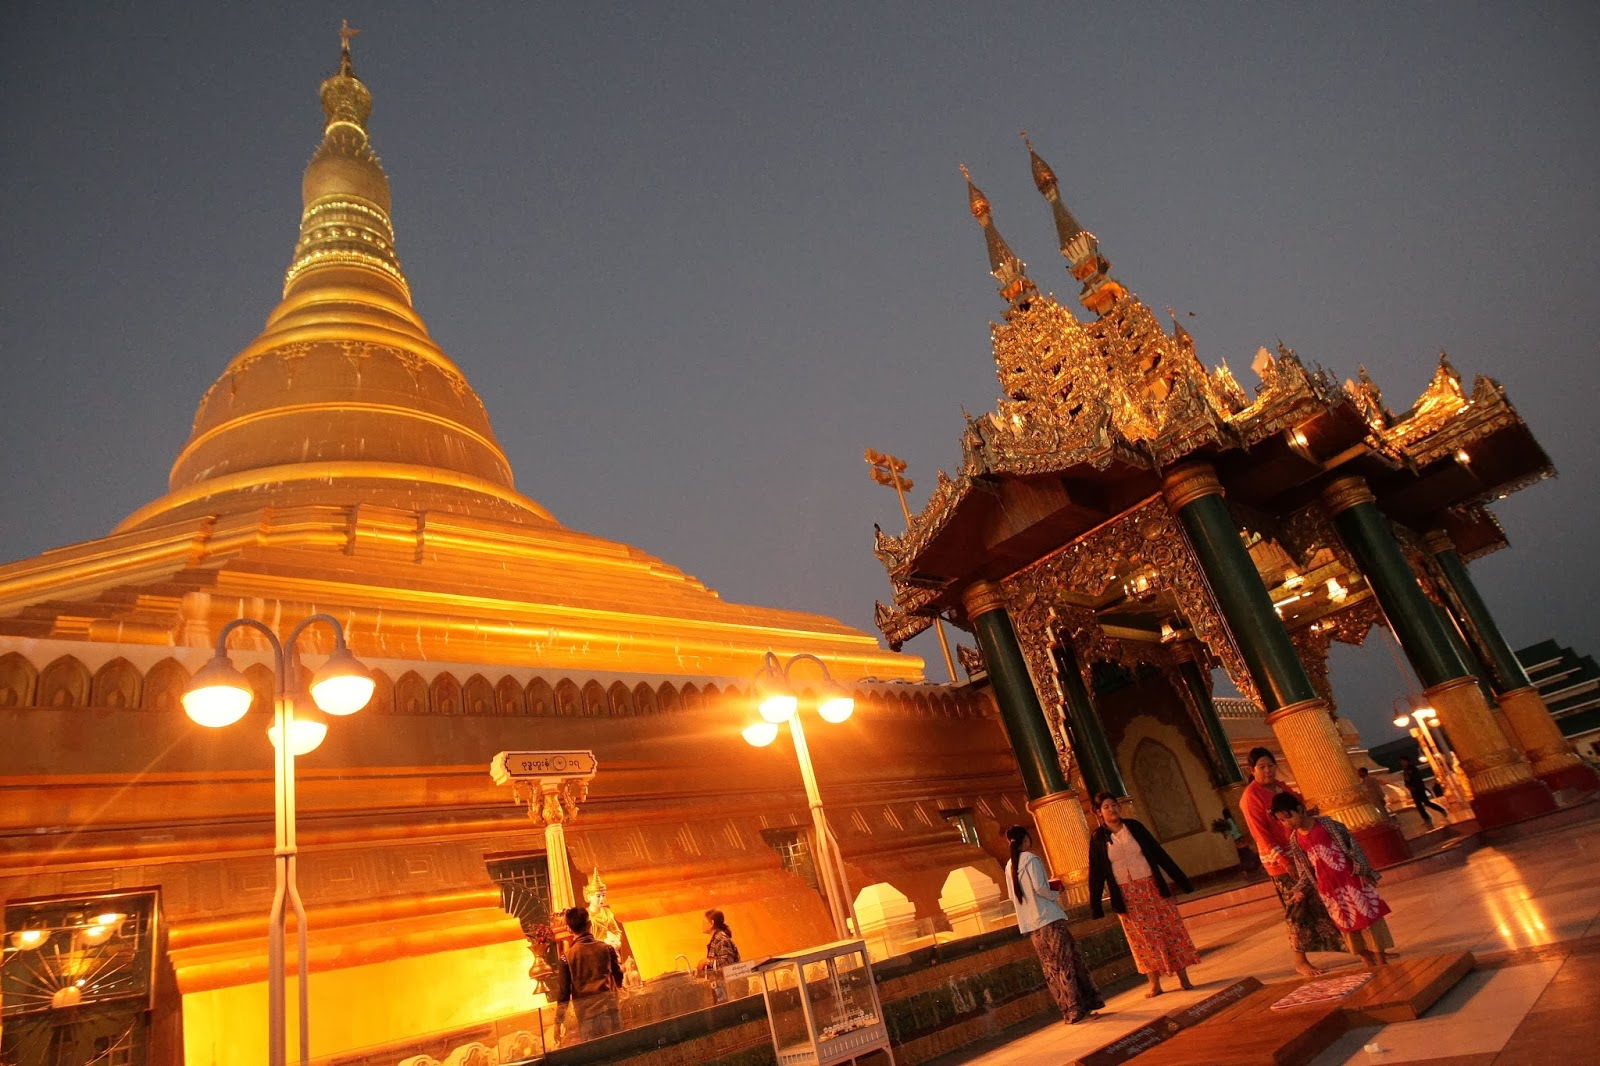 Nay Pyi Taw Myanmar  City pictures : Alive, The Journey!: Uppatasanti Pagoda Nay Pyi Taw, Myanmar